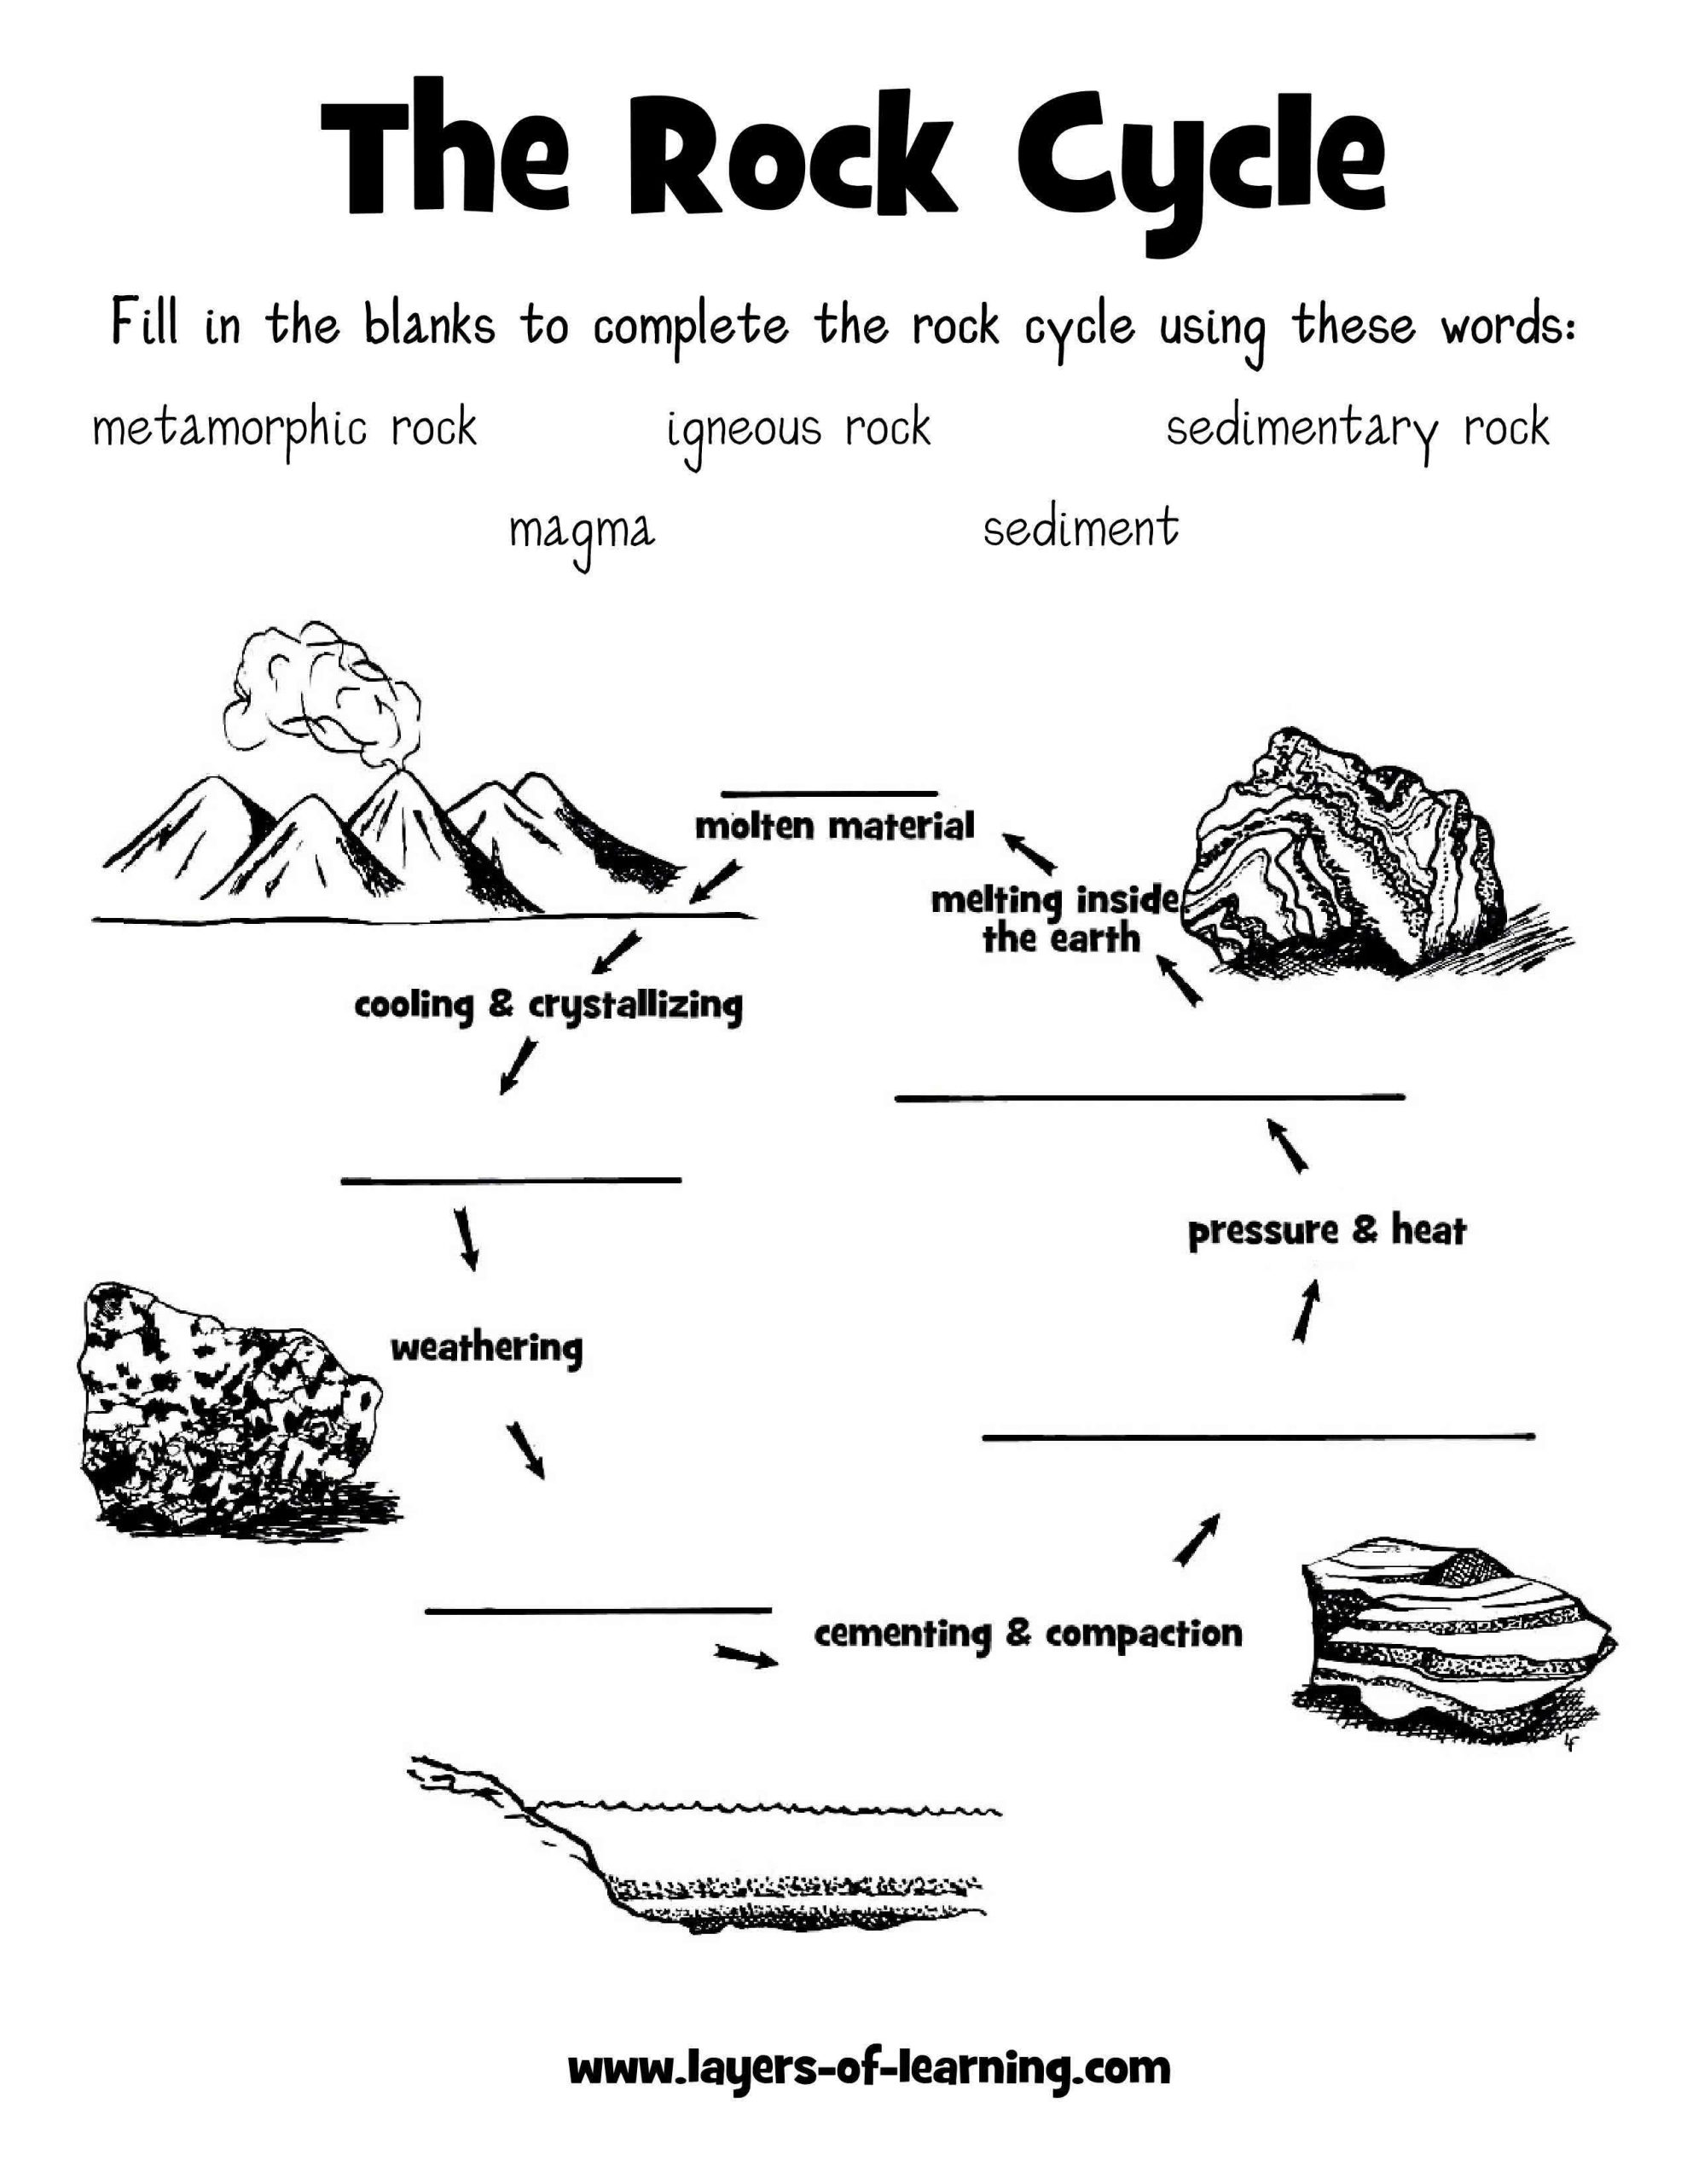 Types Of Rocks Worksheet Pdf Rock Cycle Worksheet Layers Of Learning